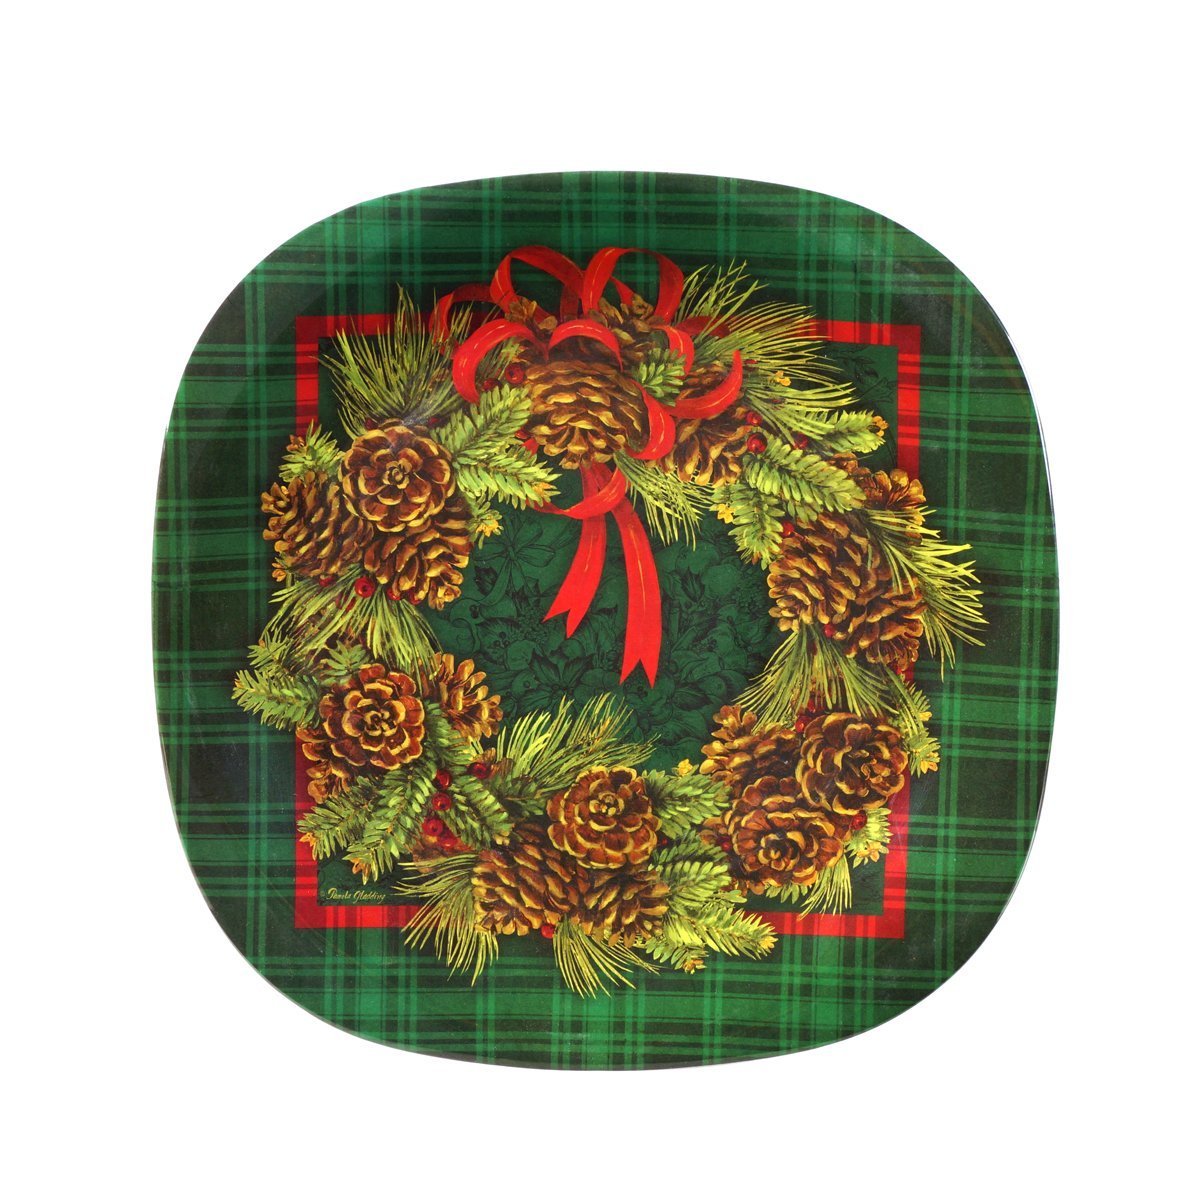 Decorative Plastic Plates Pine 8.5u0026quot;. Click to enlarge  sc 1 st  Decorative Things & Decorative Plastic Plates by Keller Charles